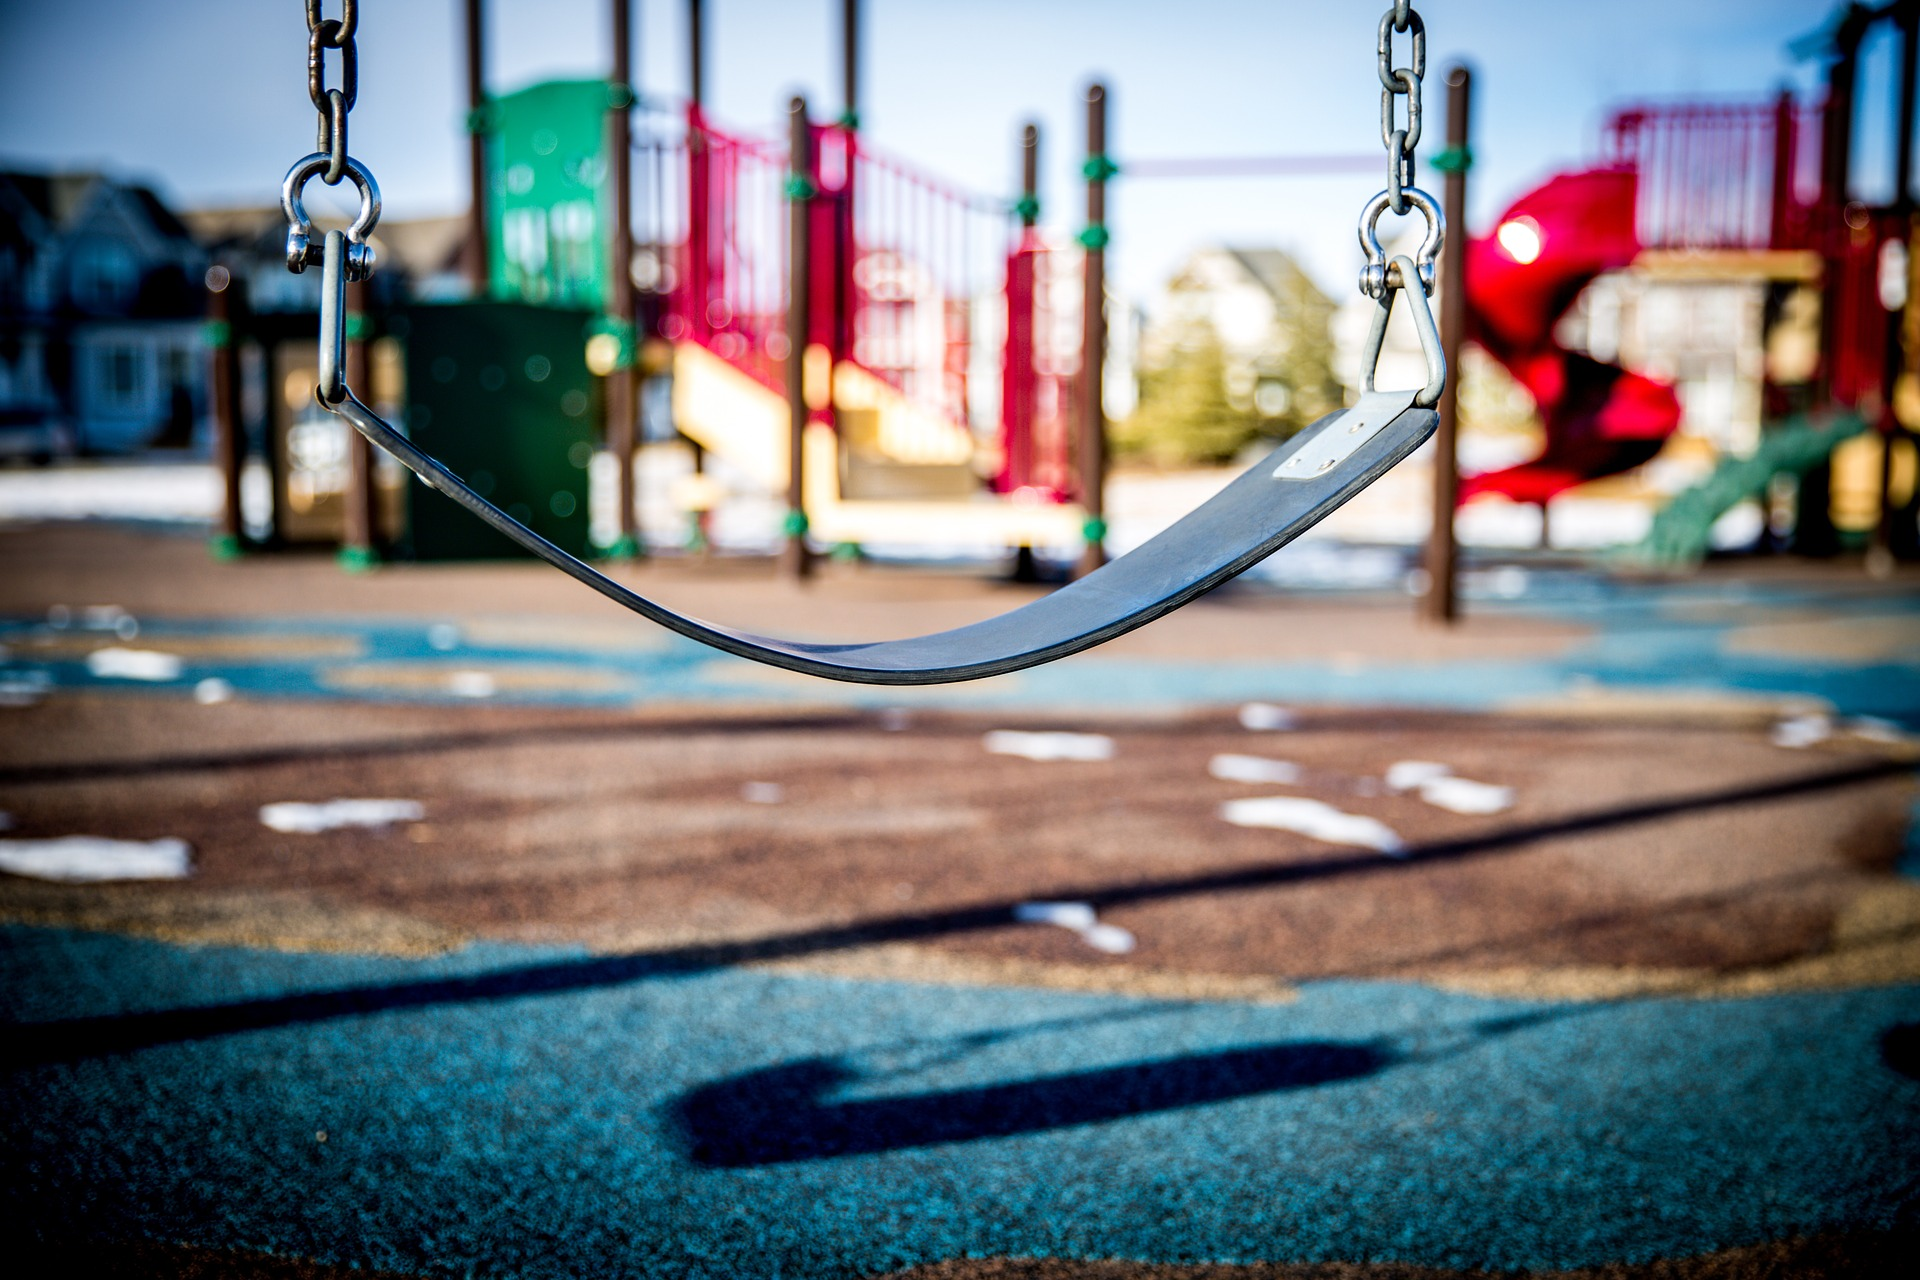 The Importance Of Playgrounds In Childhood (And Beyond!)